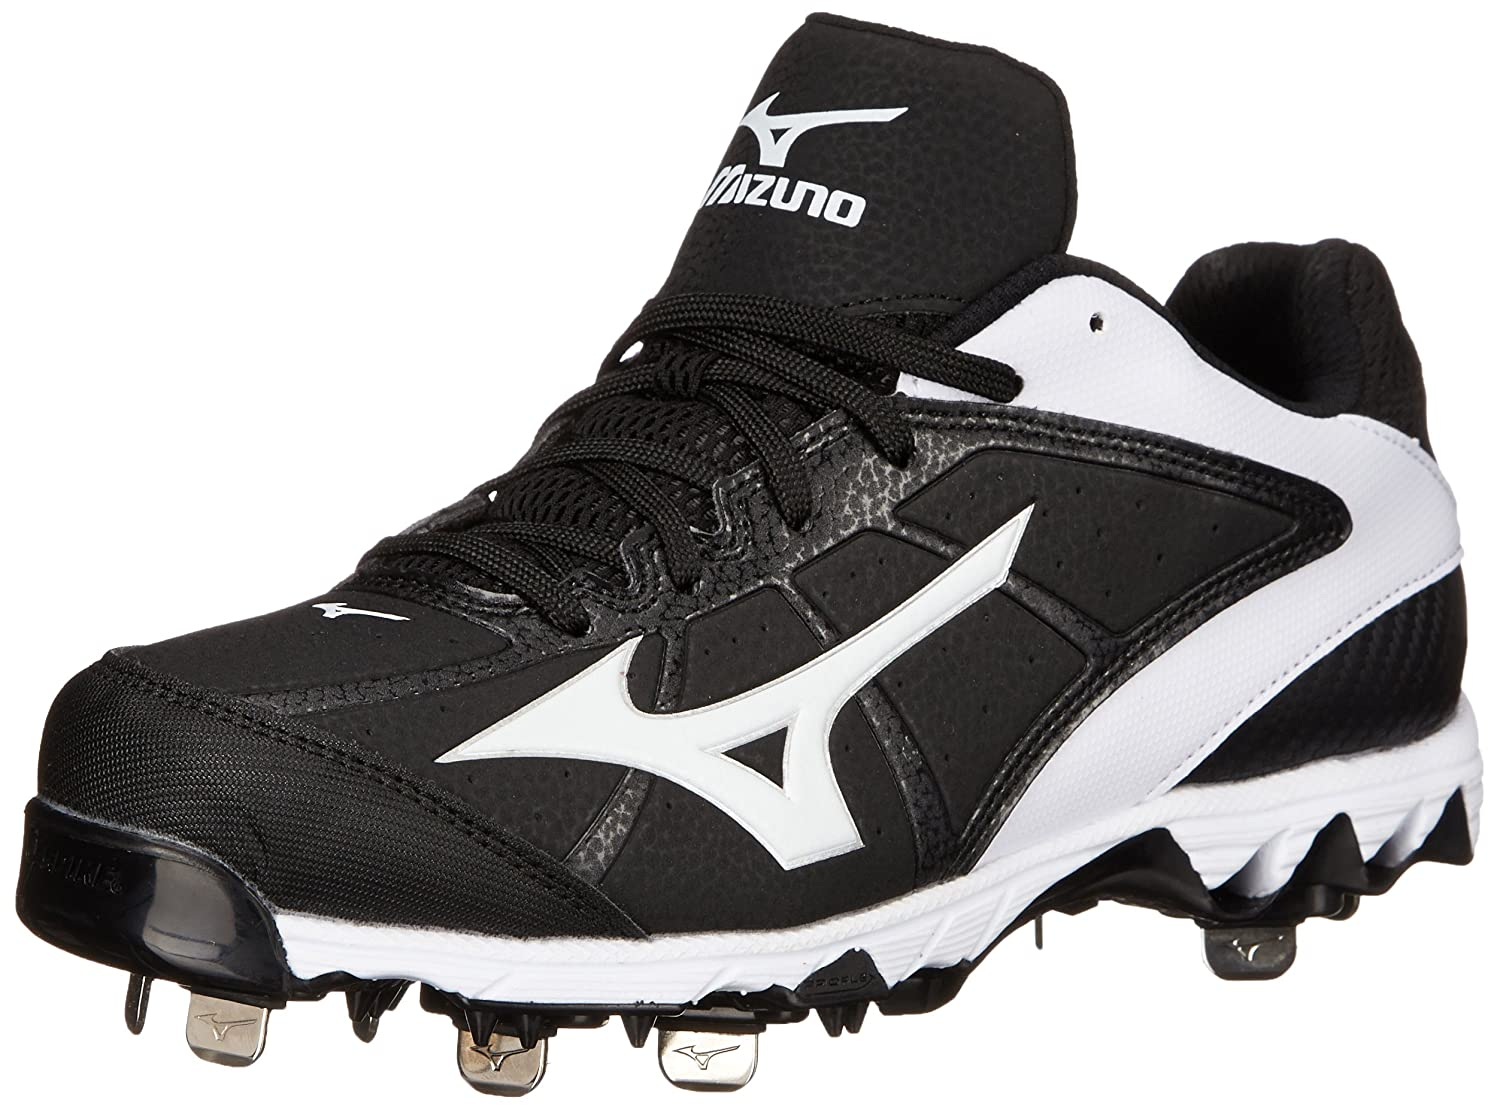 Mizuno Women's 9 Spike Select 2 Fast Pitch Metal Softball Cleat